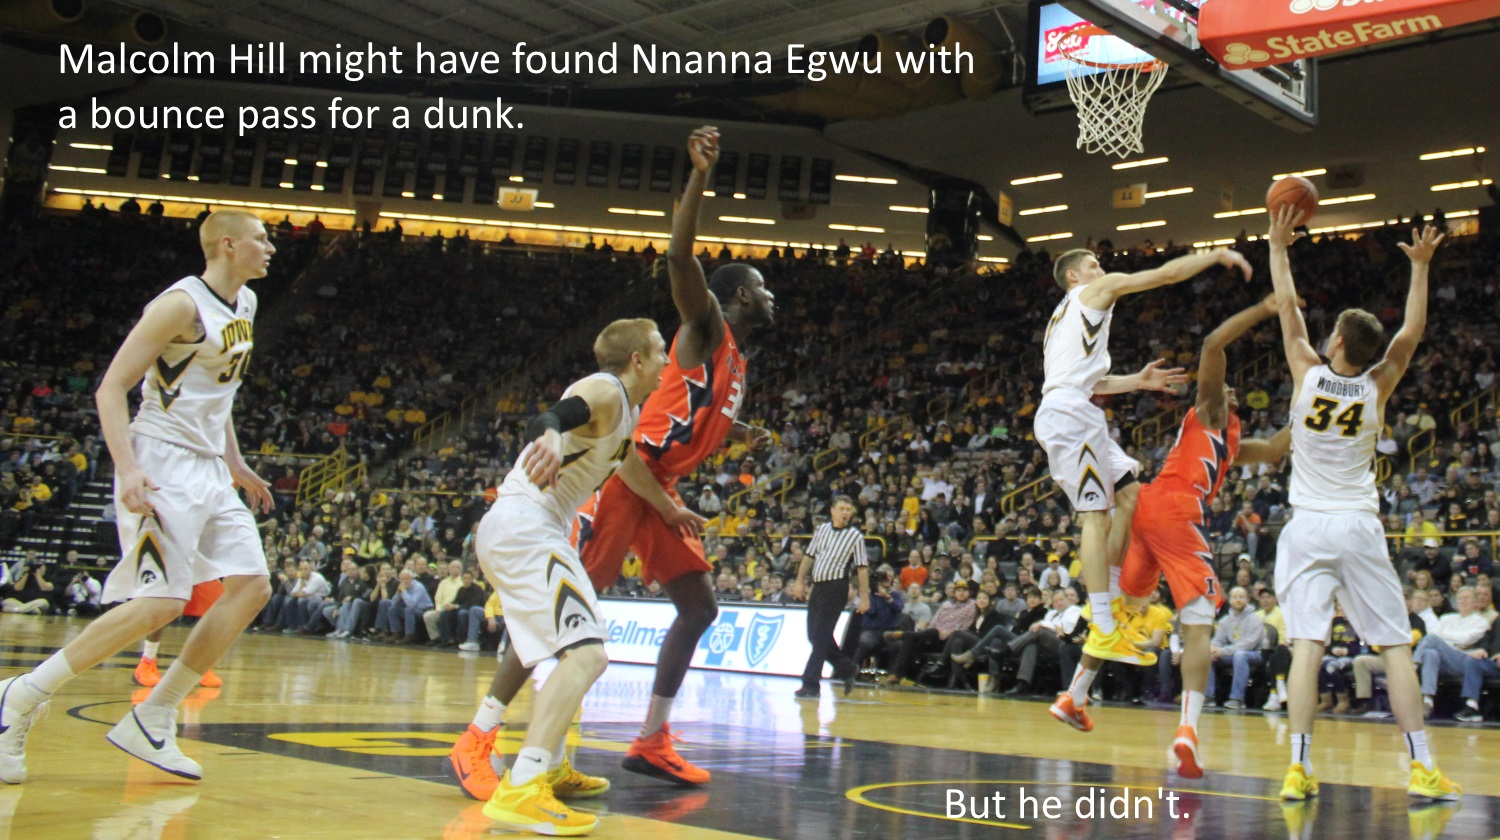 Malcolm Hill might have bounce pass to Nnanna Egwu